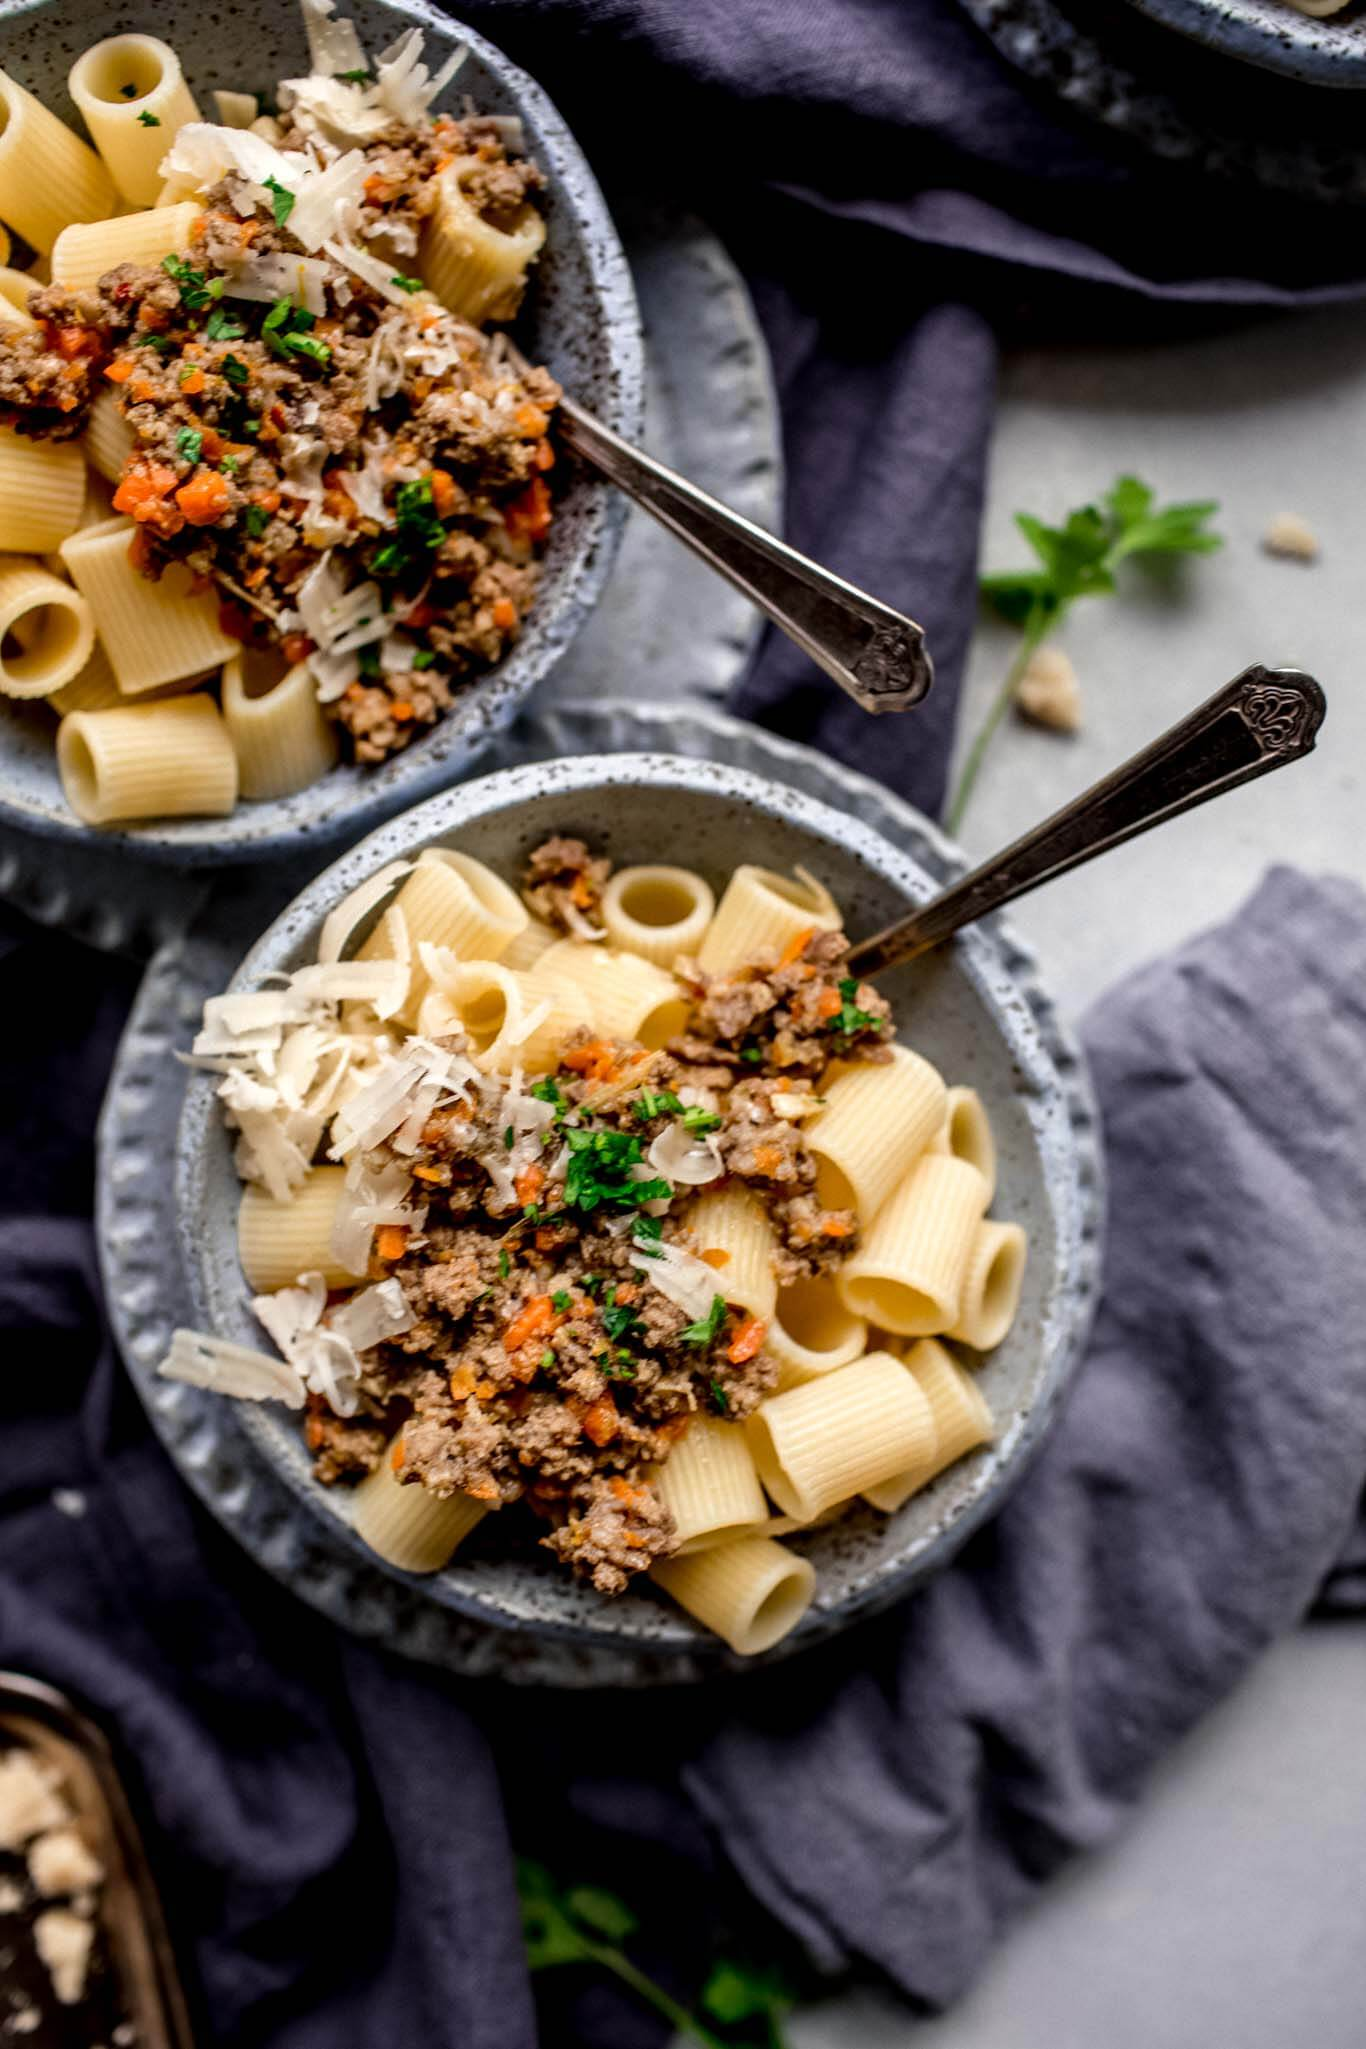 Two bowls of pasta with white bolognese.